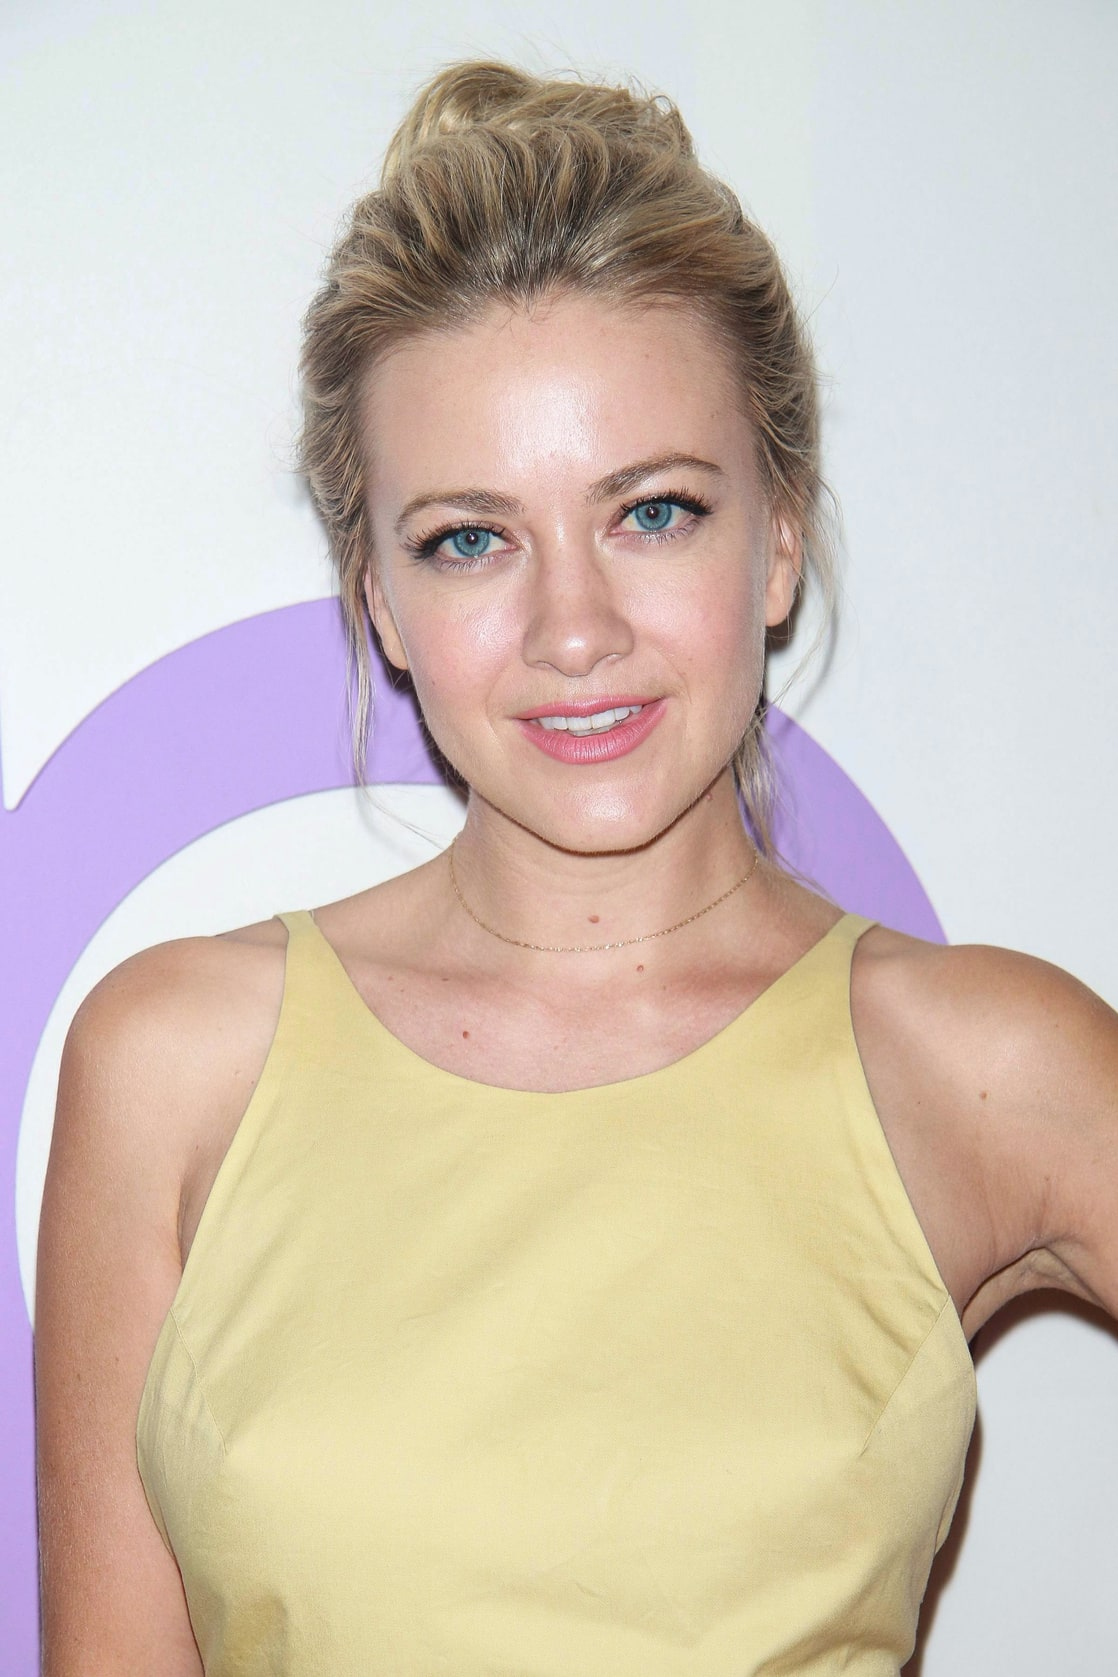 Meredith Hagner naked (79 foto and video), Sexy, Paparazzi, Boobs, butt 2006